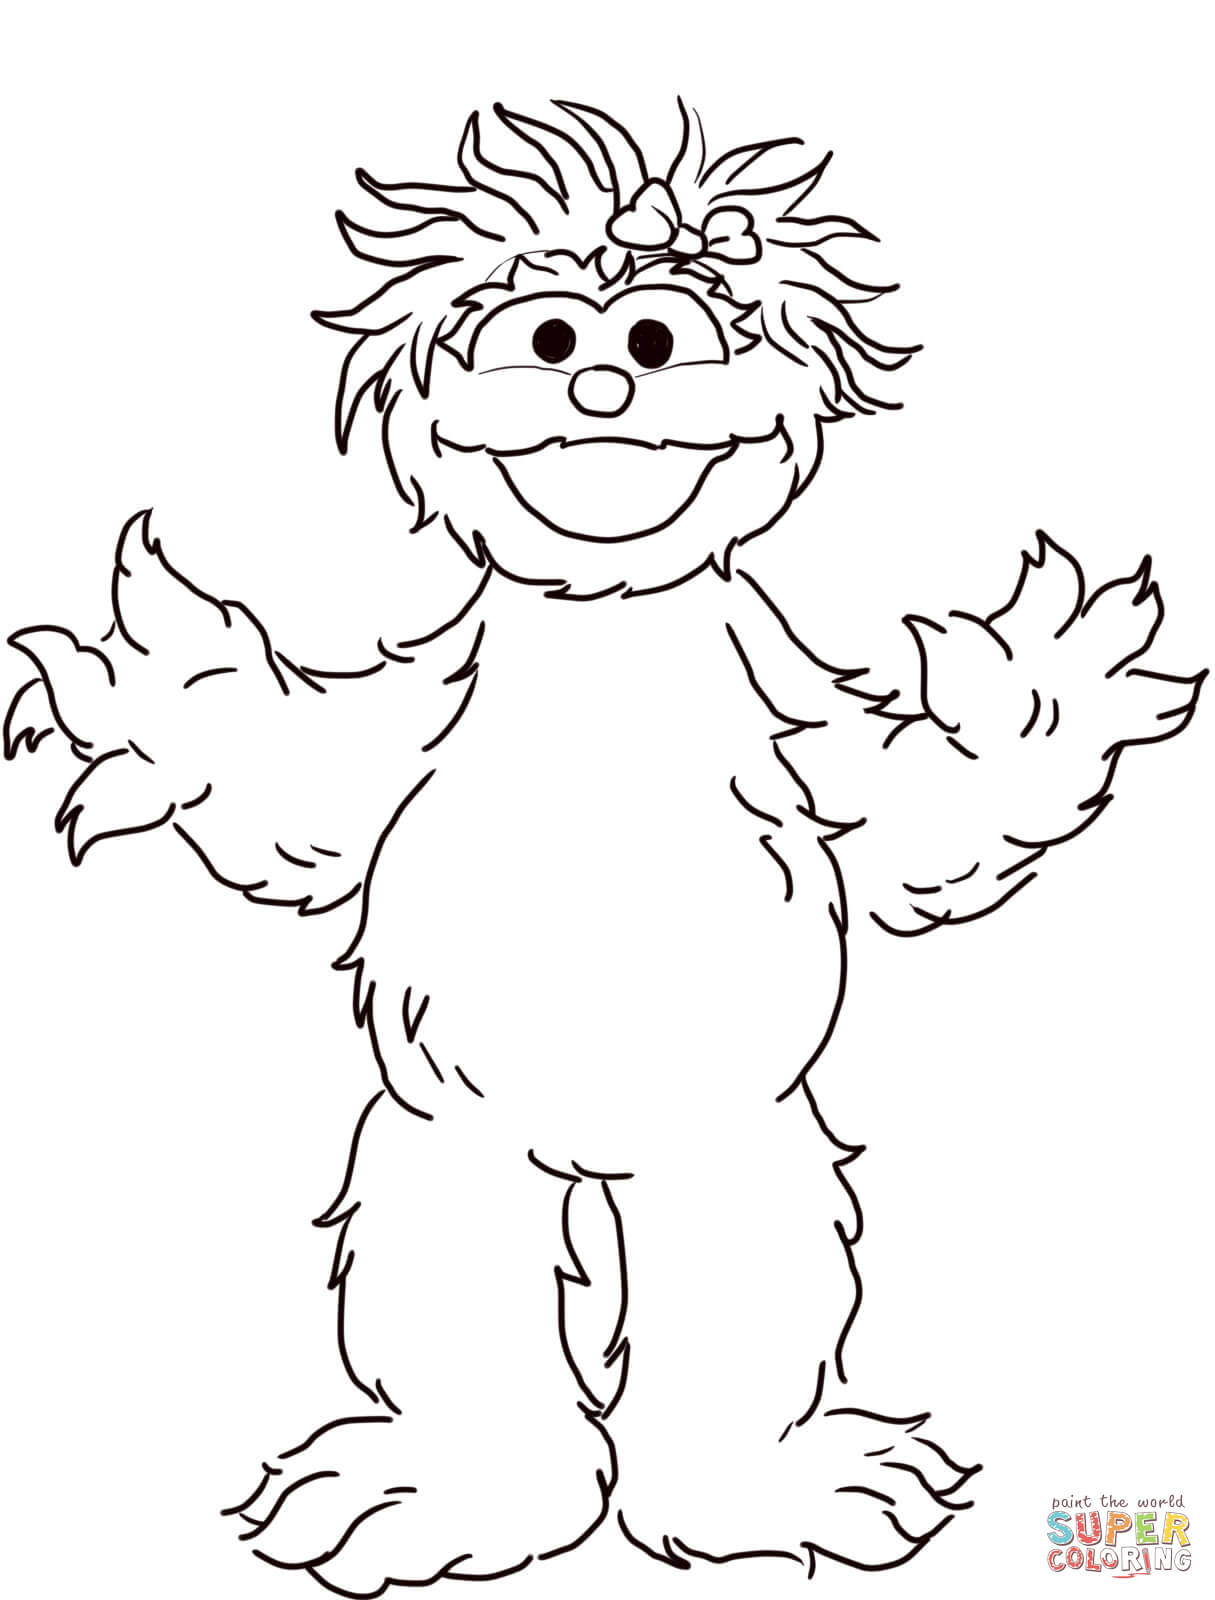 Sesame Street Rosita Coloring Page | Free Printable Coloring Pages - Free Printable Sesame Street Coloring Pages